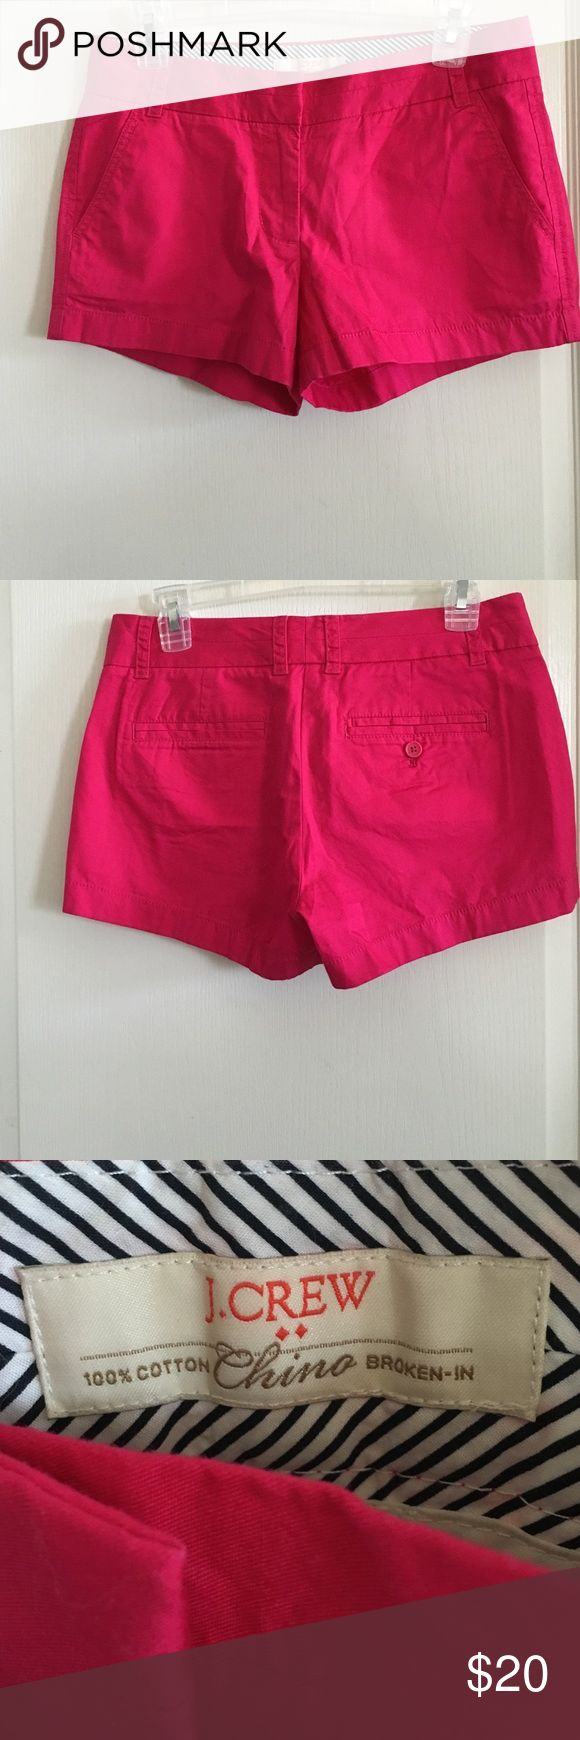 """NWT J Crew Factory Shorts Size 2 NWT chino shorts. Color is hot pink. Inseam is 3"""". No trades or Paypal. J.Crew Factory Shorts"""